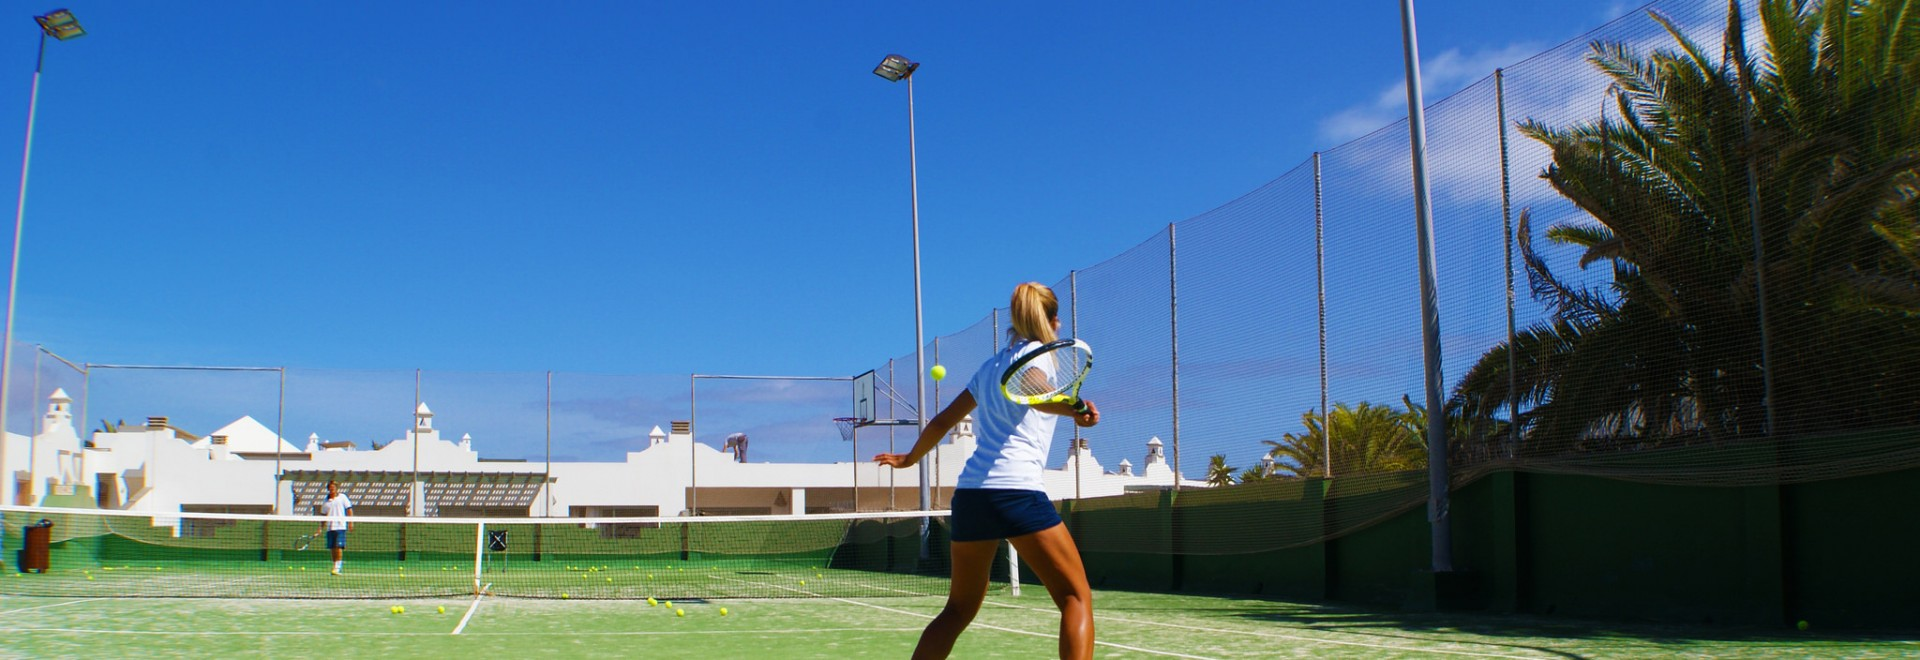 Adult Tennis Camp -Intermediate Players - Corralejo Tennis Academy, Canary Islands